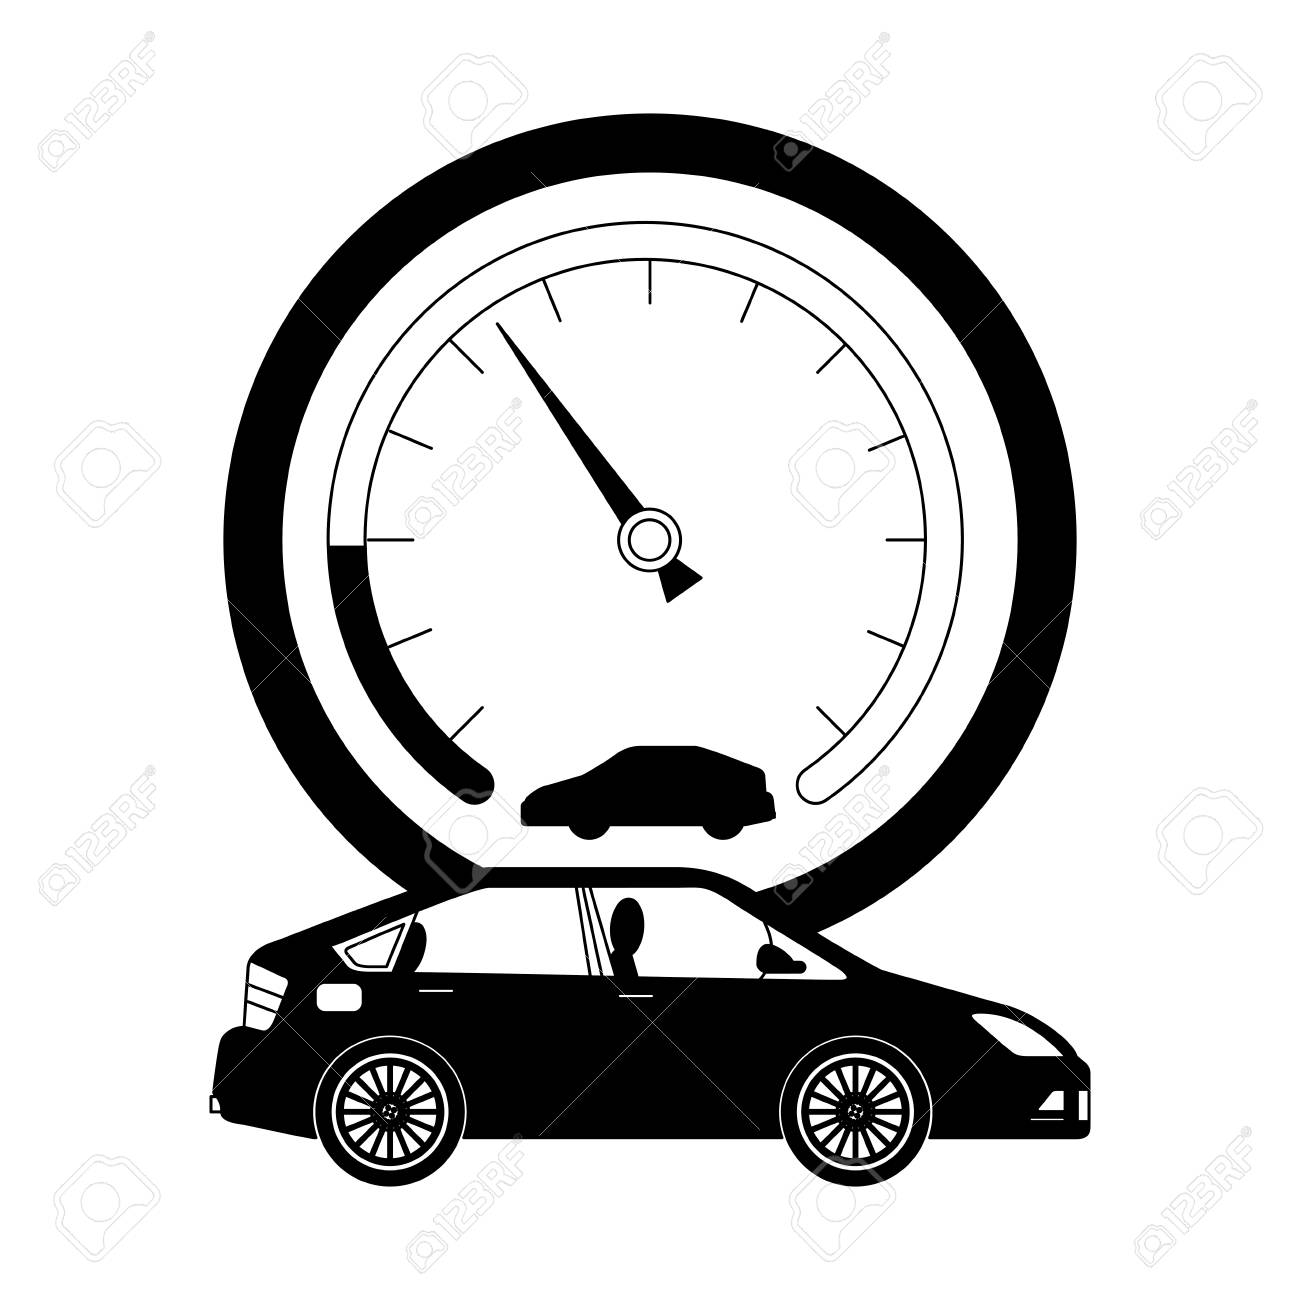 speed gauge with car isolated icon vector illustration design - 112070746